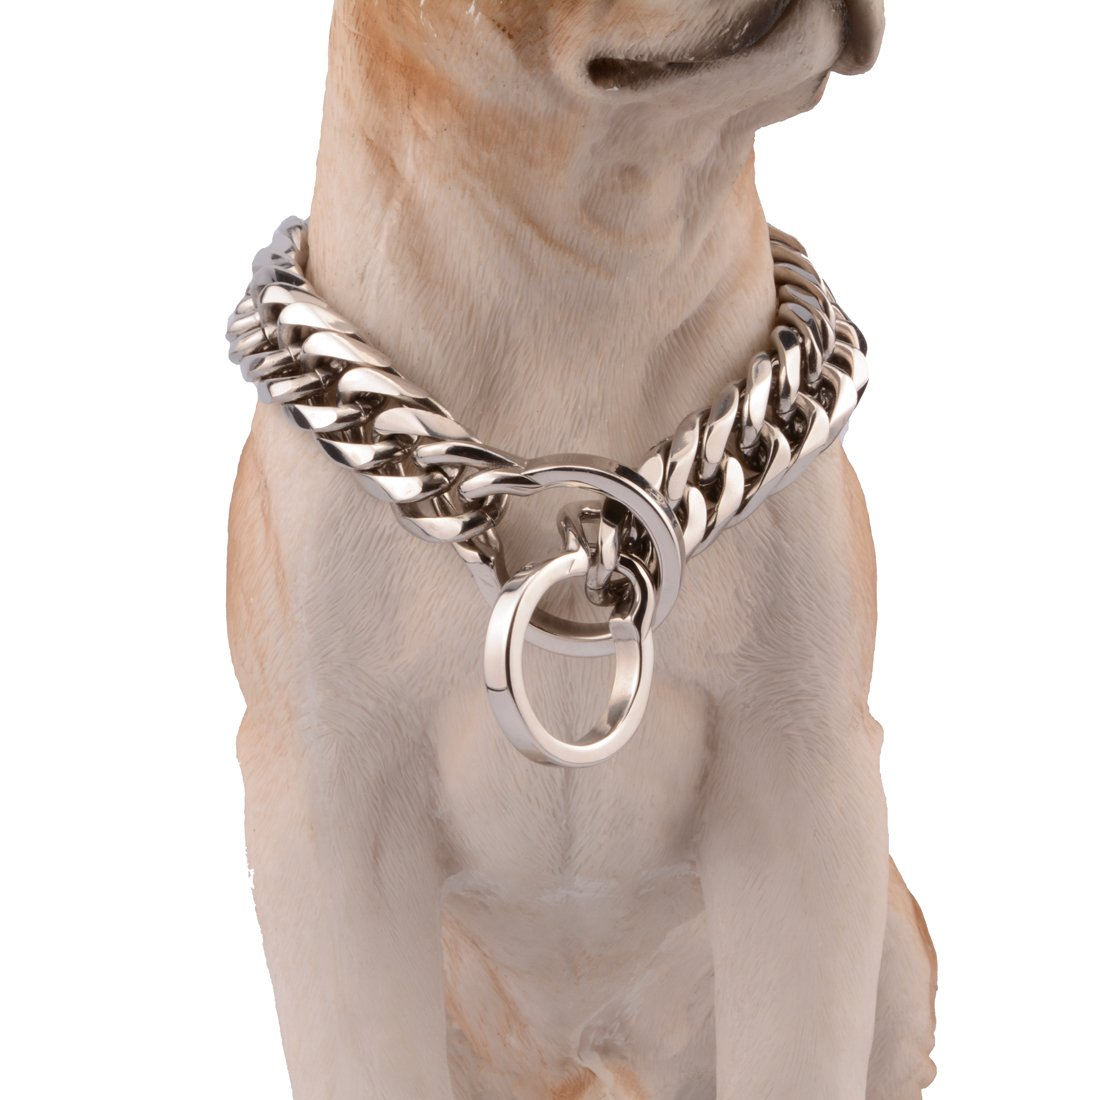 28inch Jewelry Kingdom 1 16 18mm Wide Double Curb Link Chain Stainless Steel Pet Dog Choke Chain Collar,Polishing Silver, 14-36  Long (18mm Wide, 28inch)